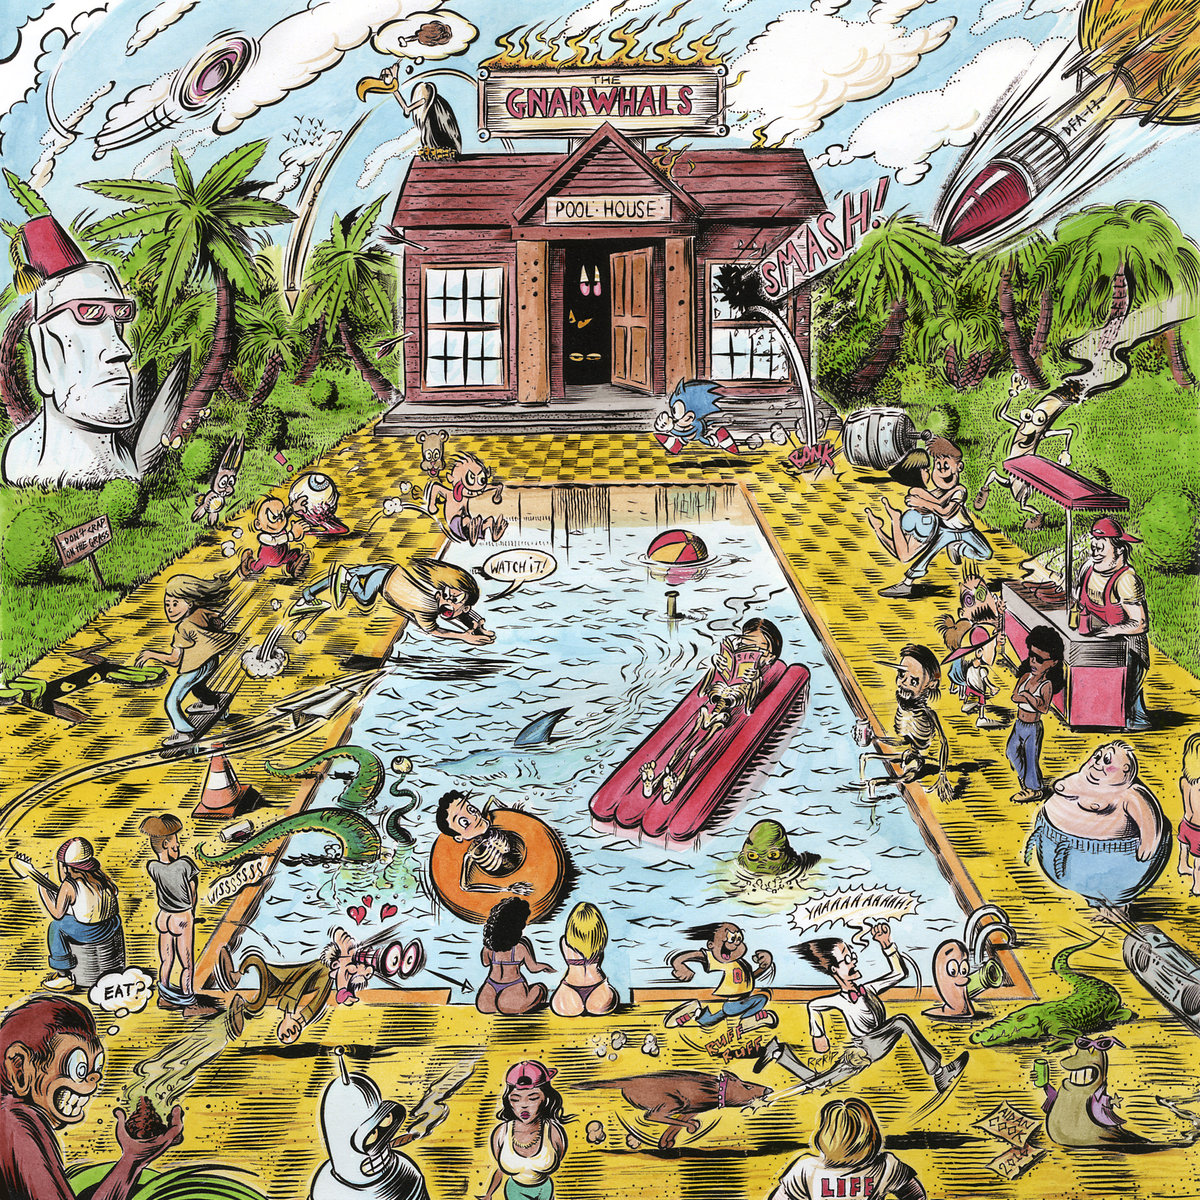 The Gnarwhals - Pool House 12